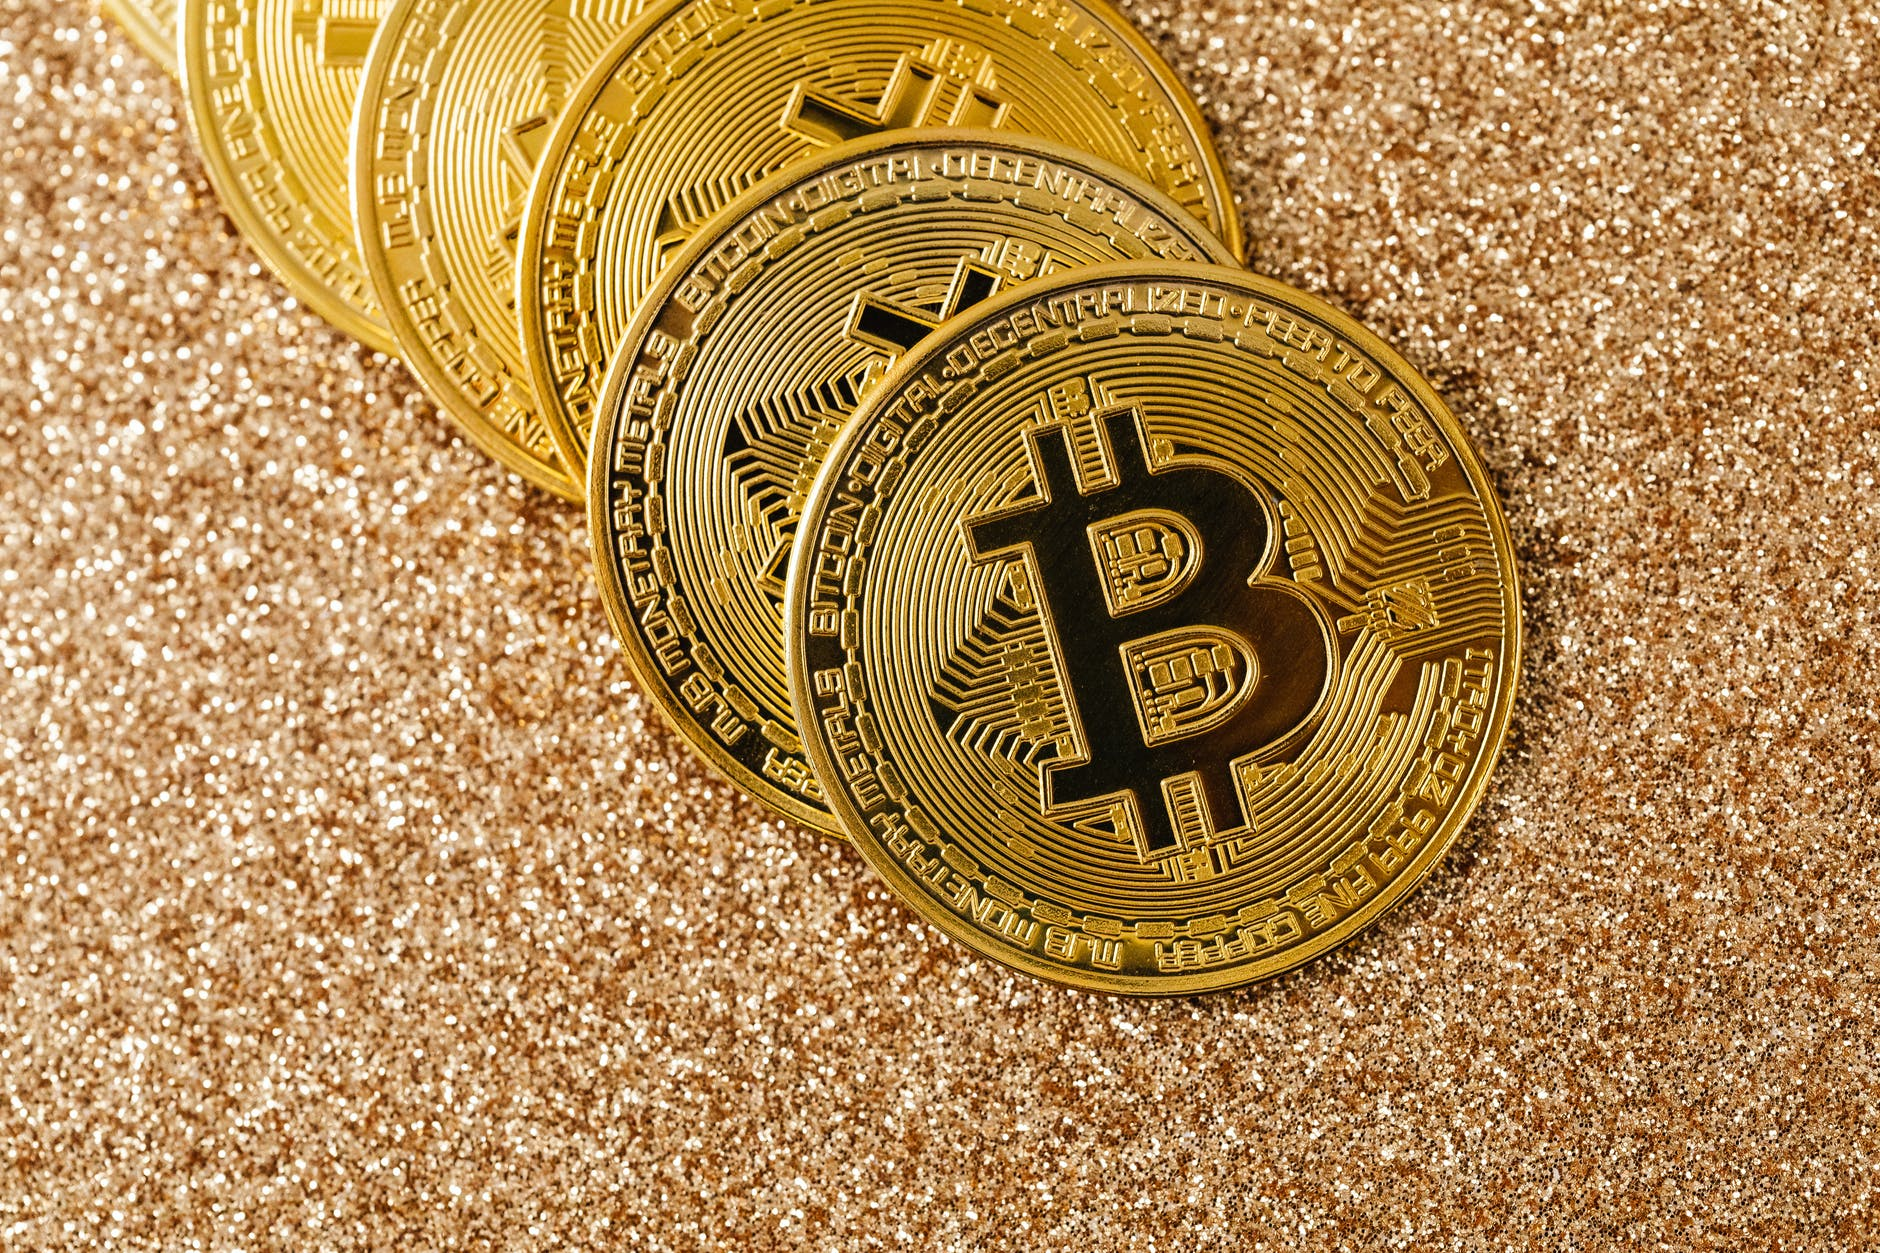 Bitcoin (BTC) hits $20,000 for the first time since 2017